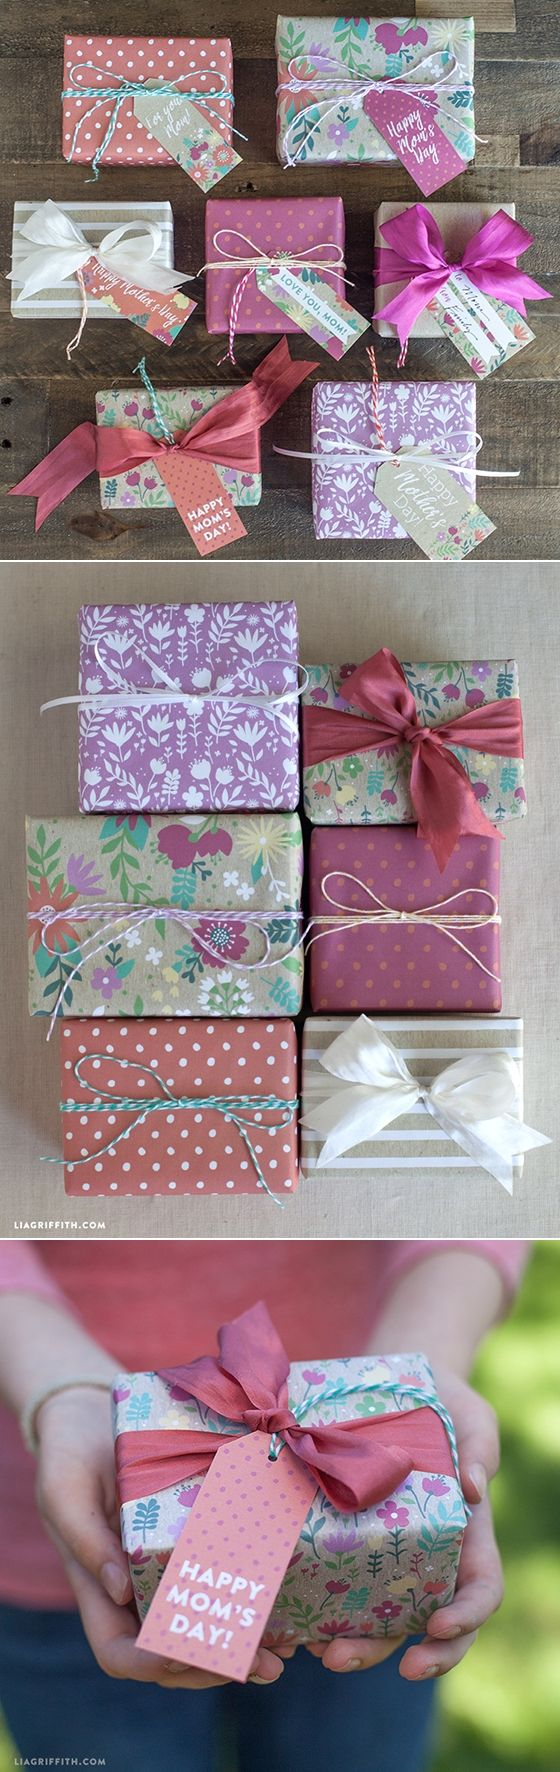 printable #giftwrap #gifttag #Mothersday at www.LiaGriffith.com